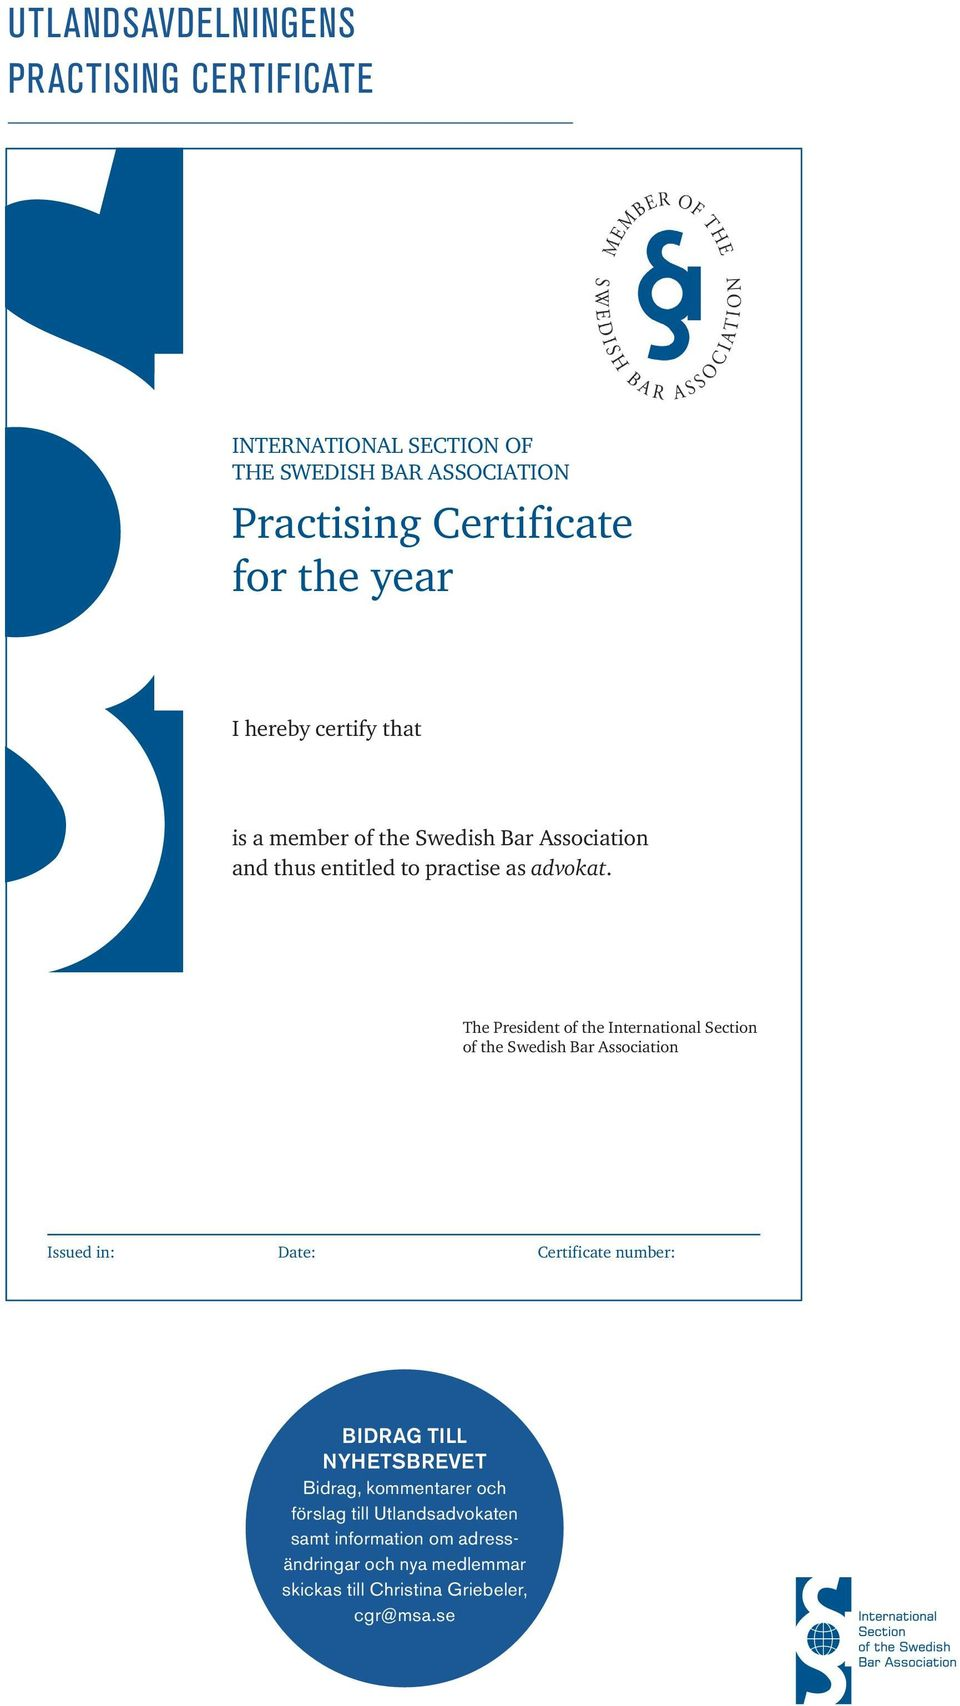 The President of the International Section of the Swedish Bar Association Issued in: Date: Certificate number: BIDRAG TILL